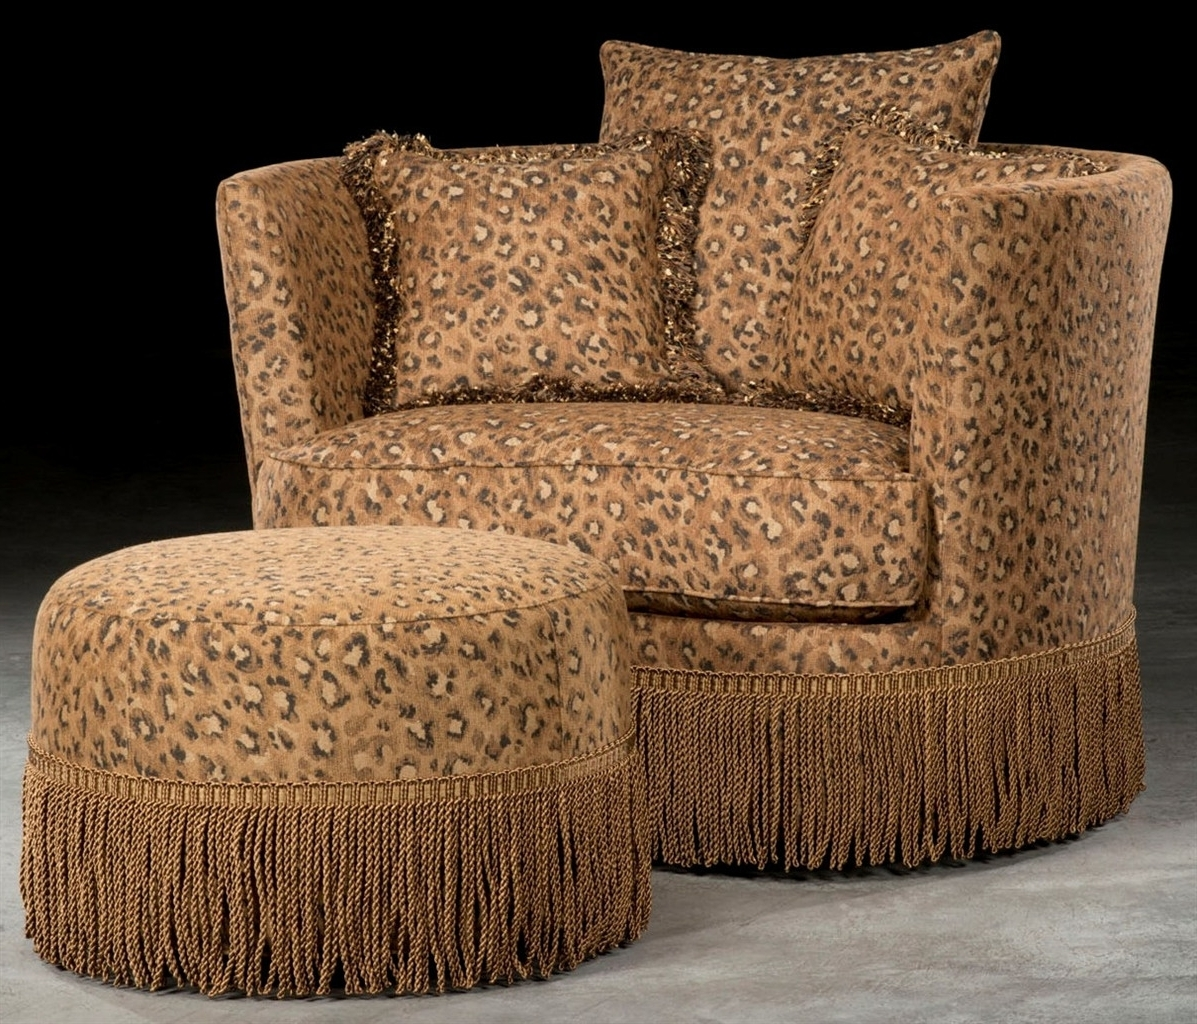 Trendy Zebra Print Chaise Lounge Chairs Inside Animal Print Ottoman Furniture Long Ottoman With Storage Light (View 13 of 15)